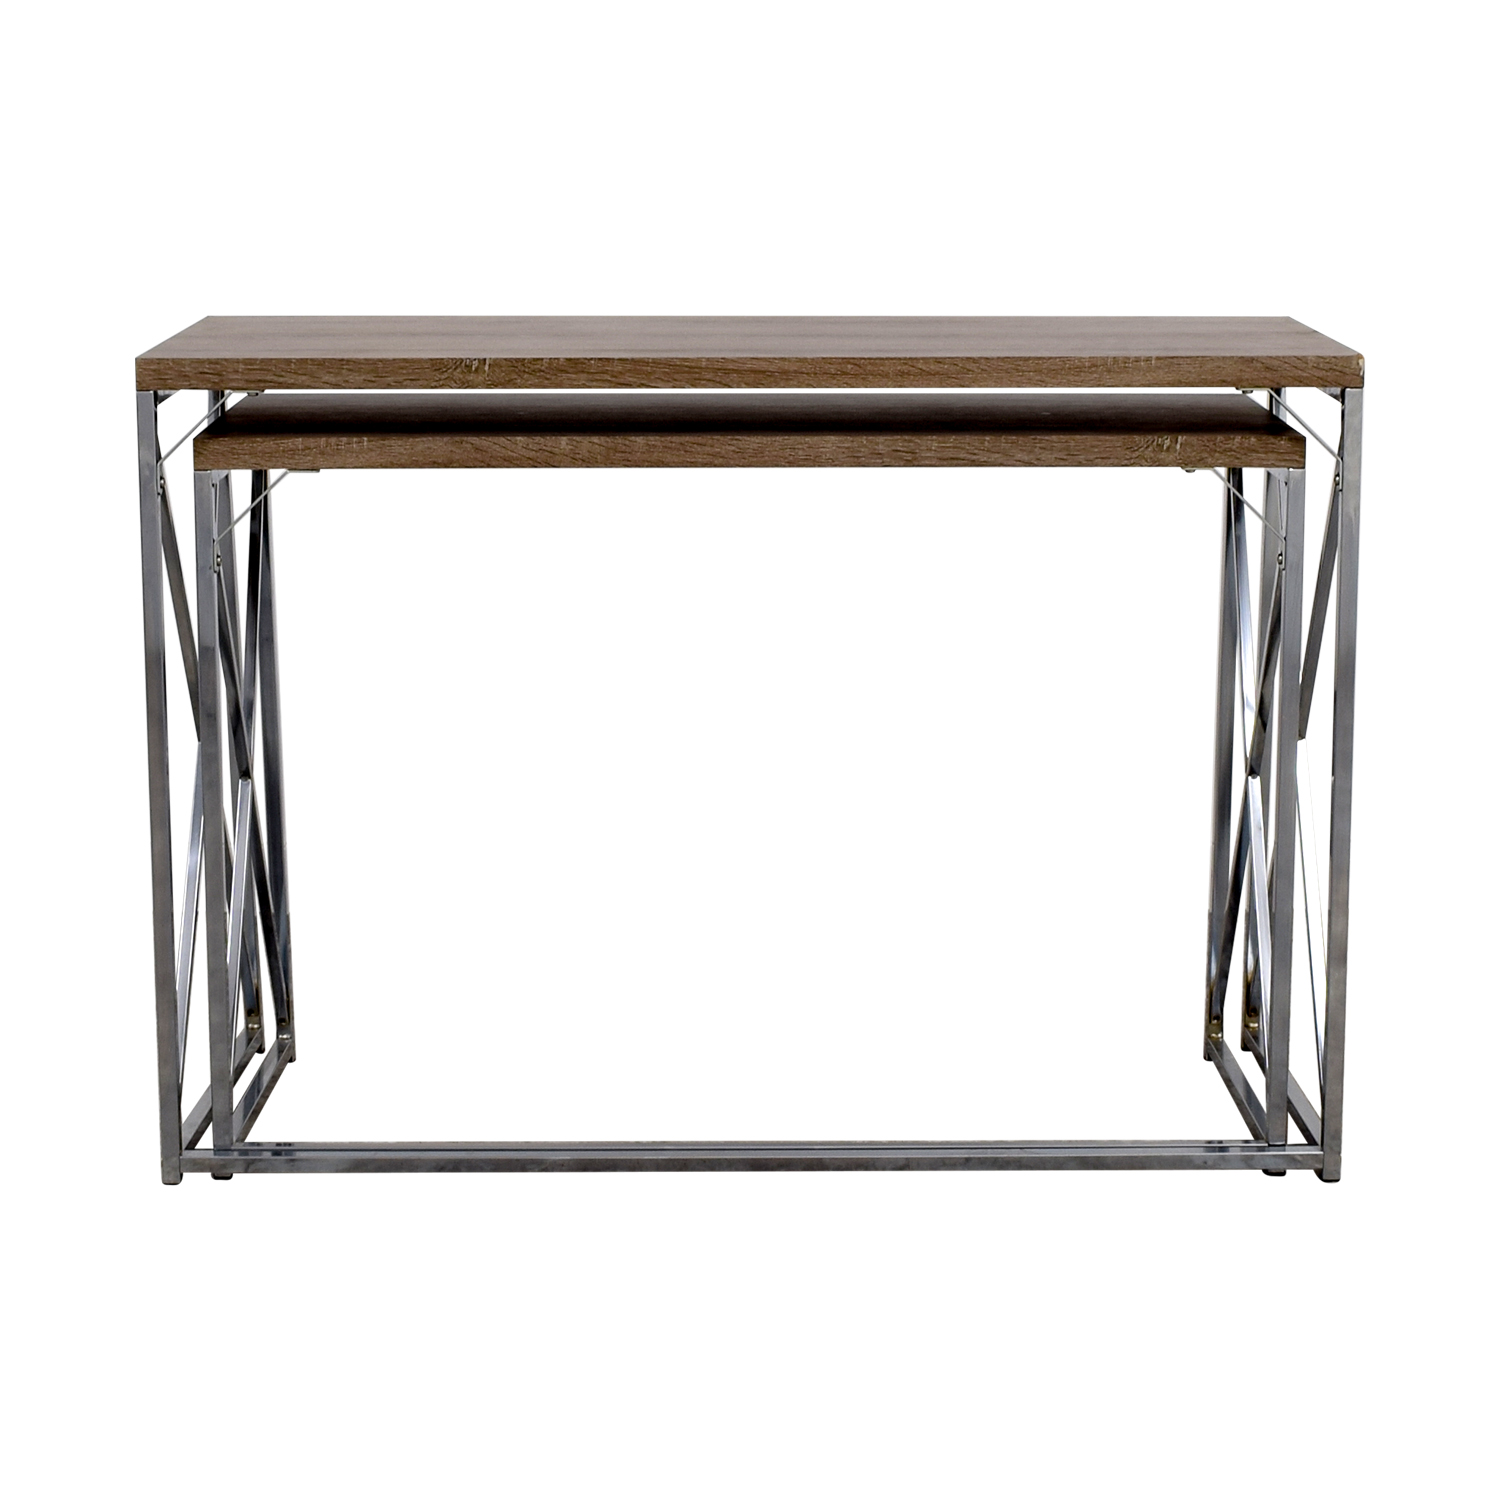 Monarch Monarch Rustic Nesting Console Tables for sale